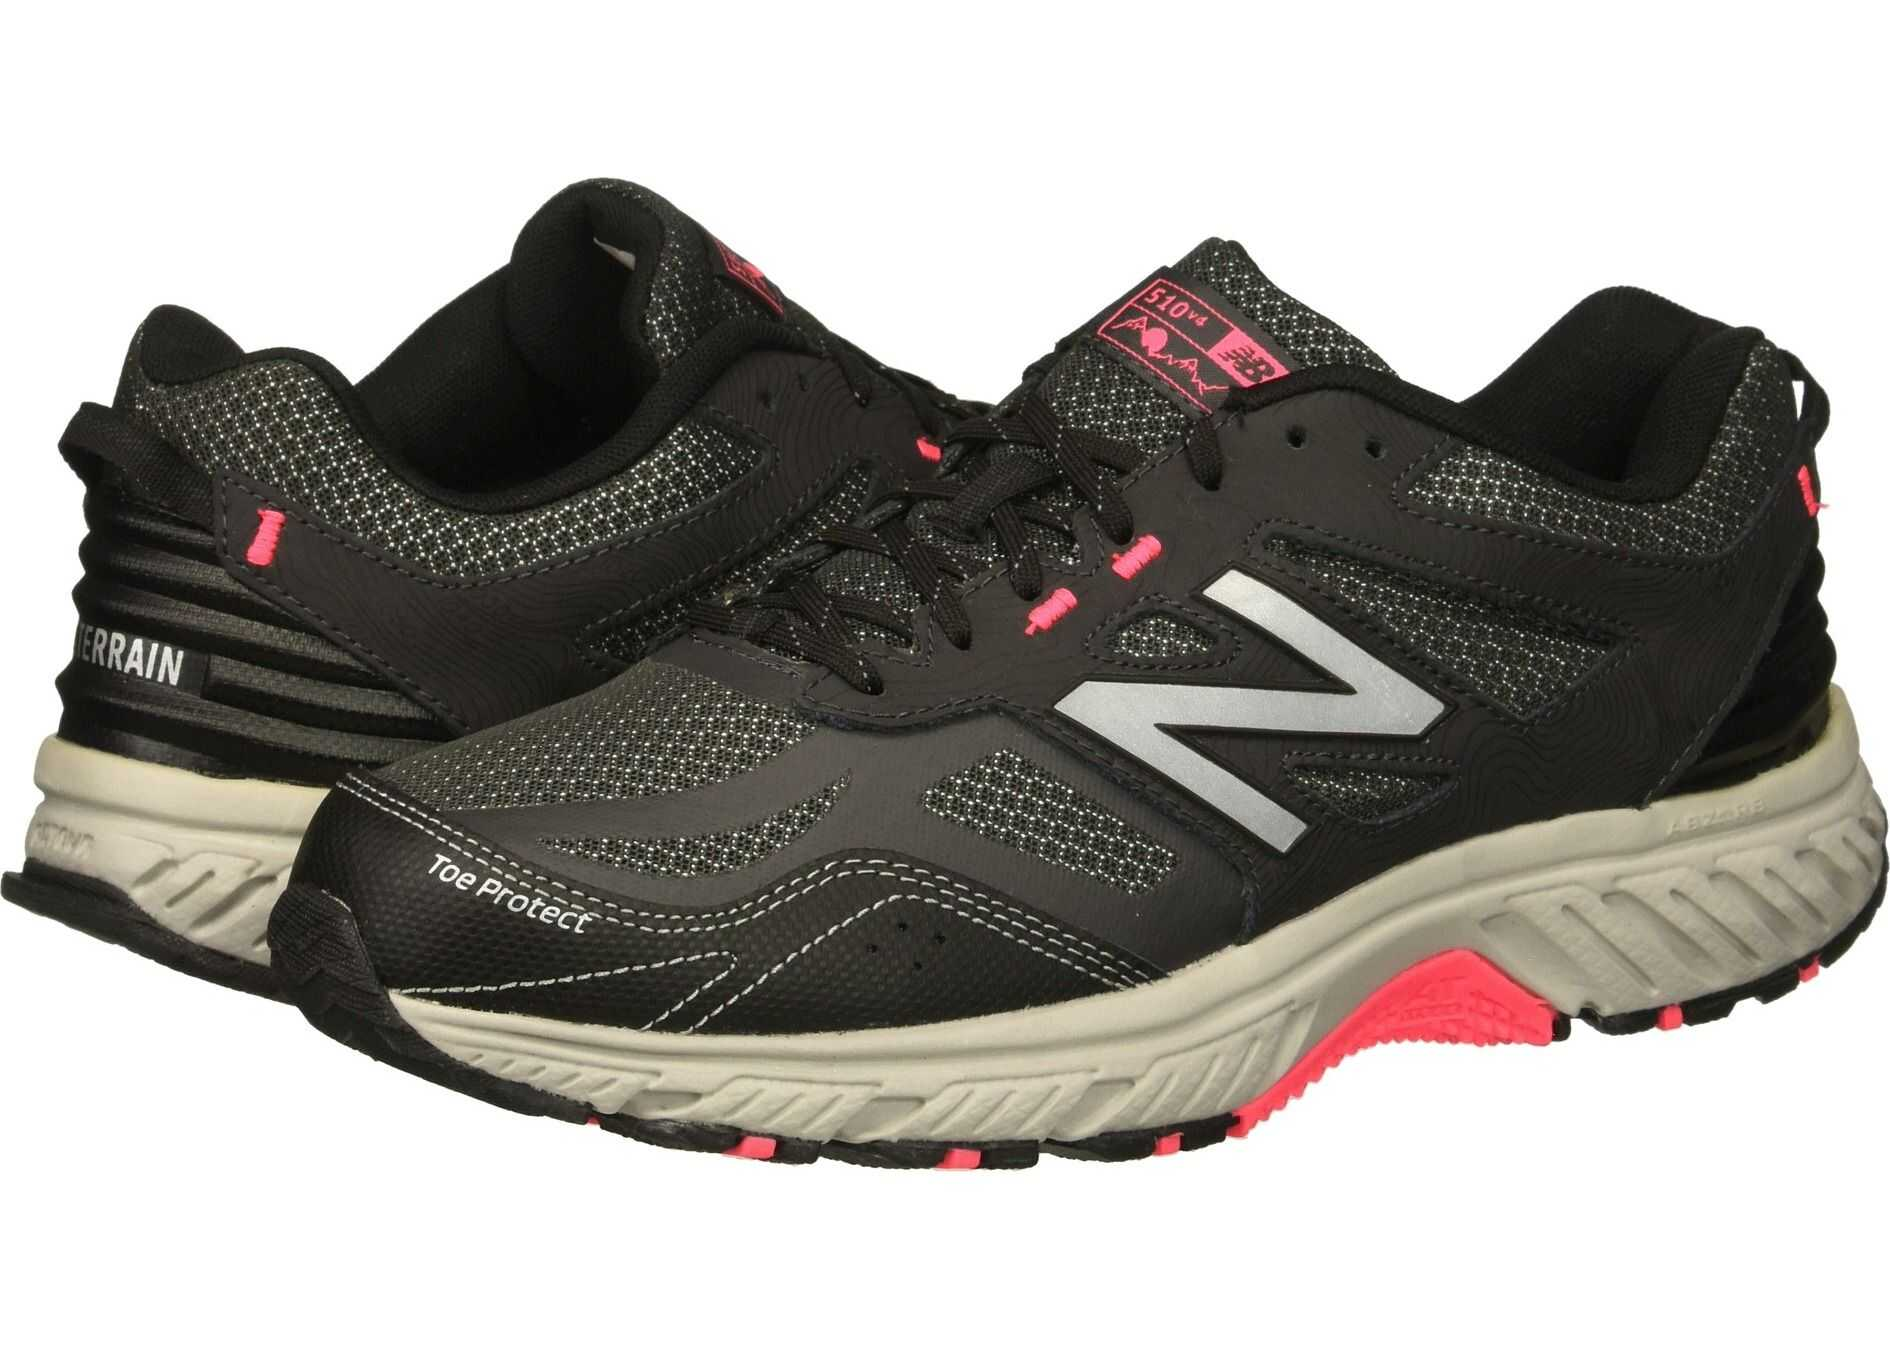 New Balance 510v4 Black/Phantom/Pink Zing